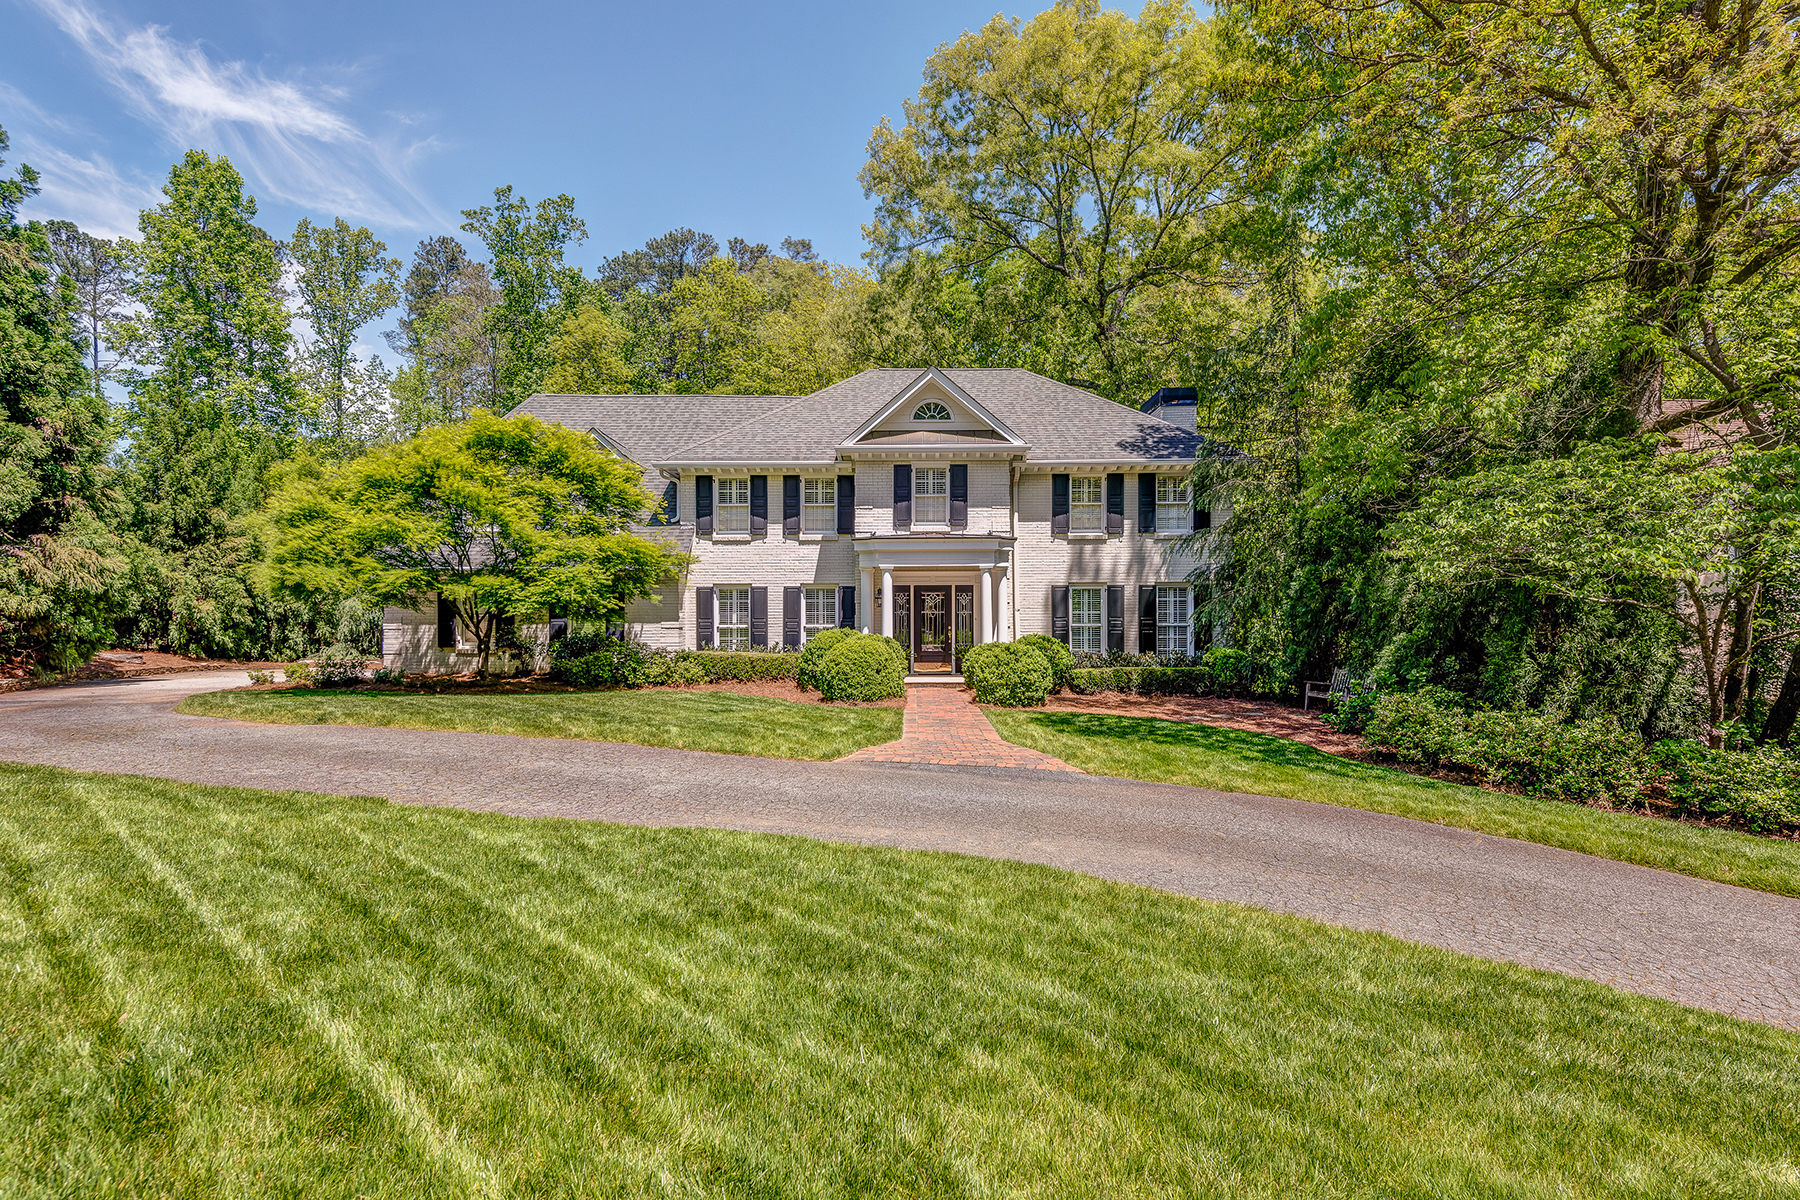 Single Family Home for Sale at Secluded Gem In Atlanta Country Club 625 Willow Knoll Drive SE Marietta, Georgia 30067 United States